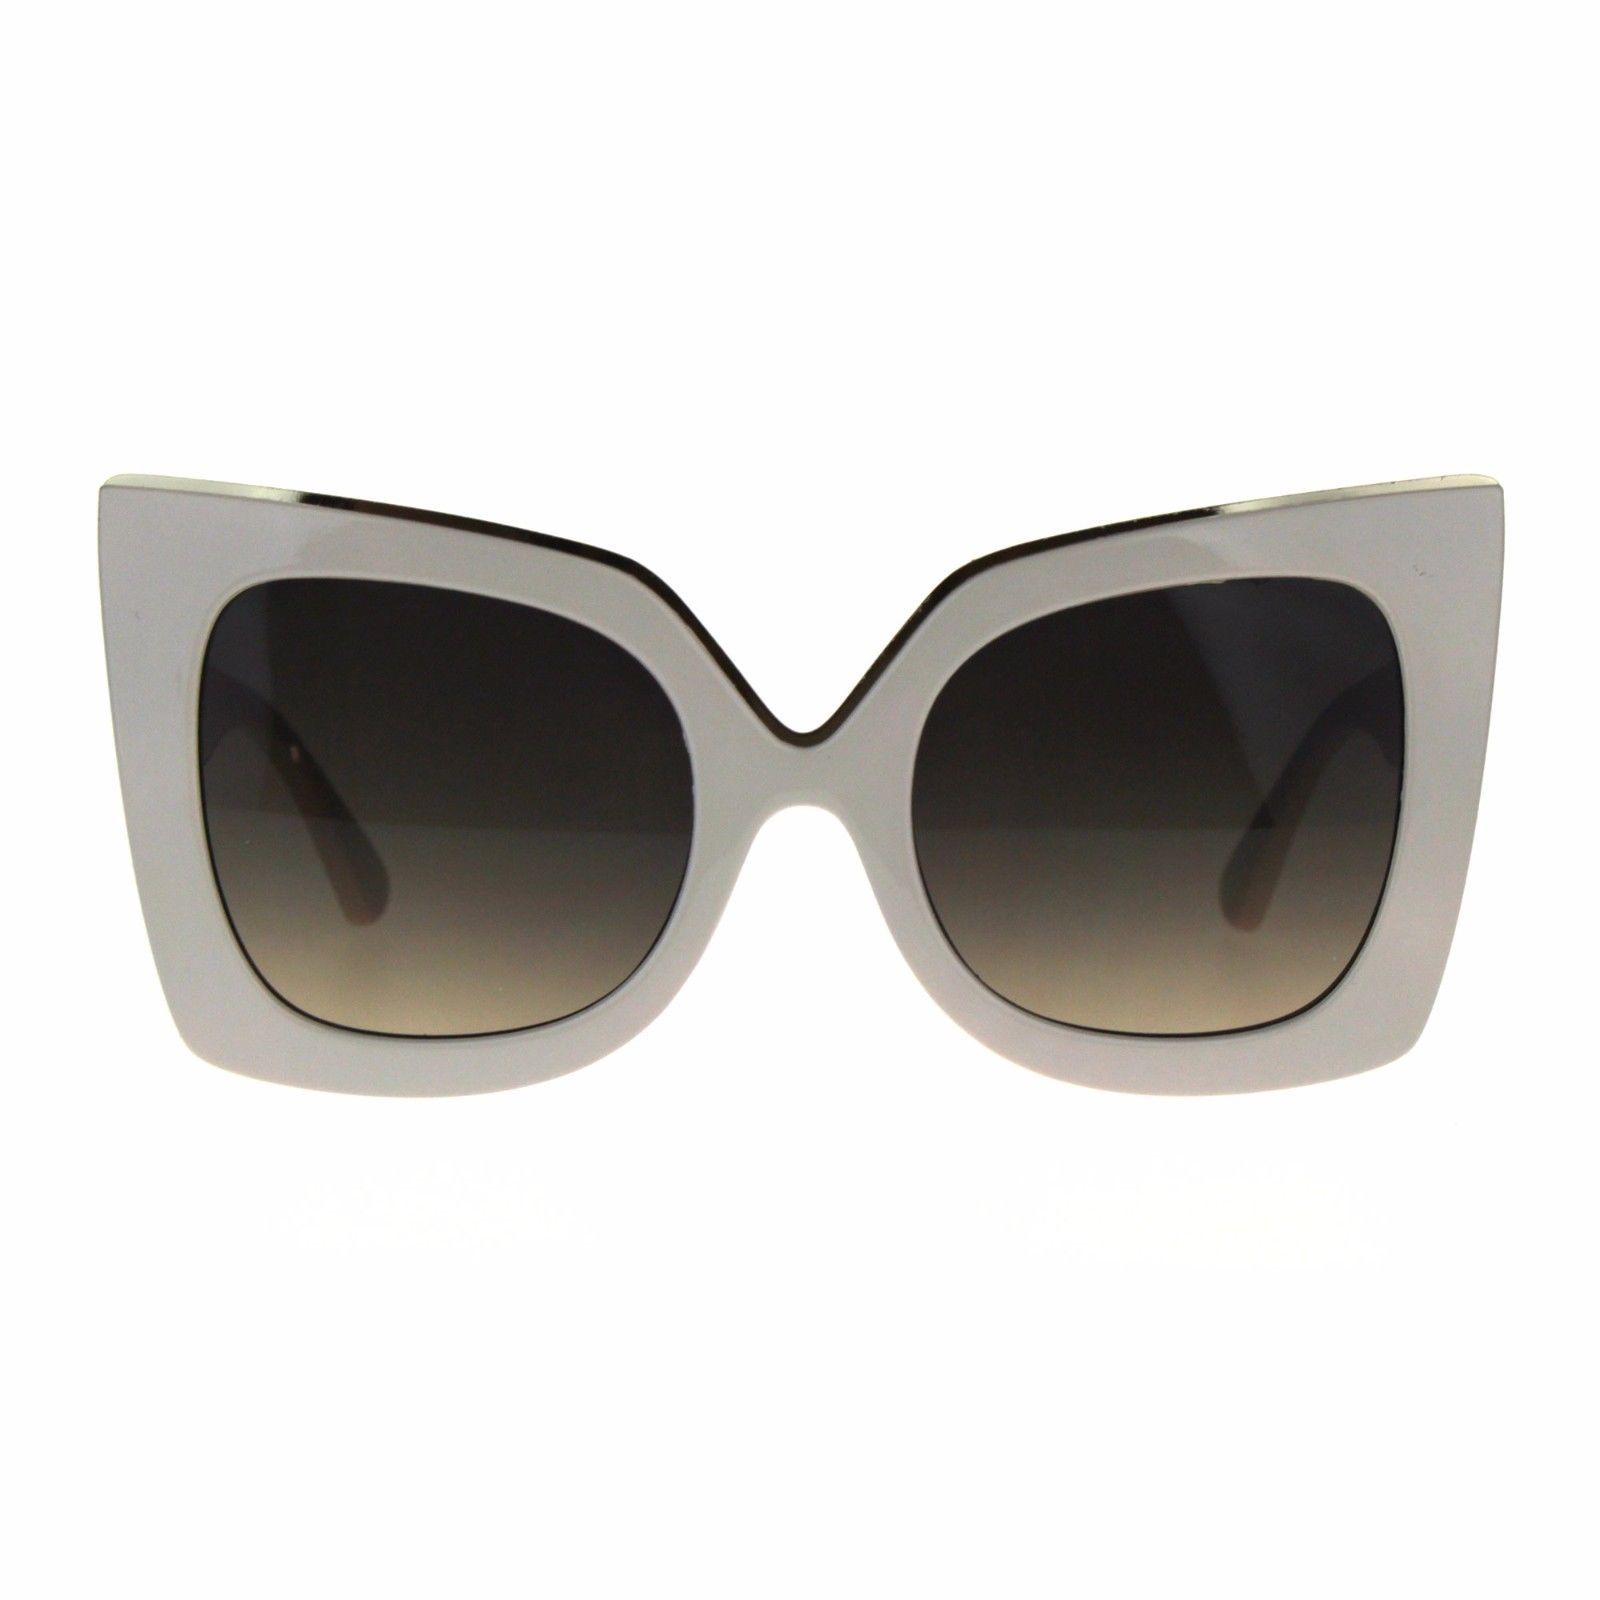 Womens Sunglasses Oversized Fashion Square Butterfly Metal Top Accent